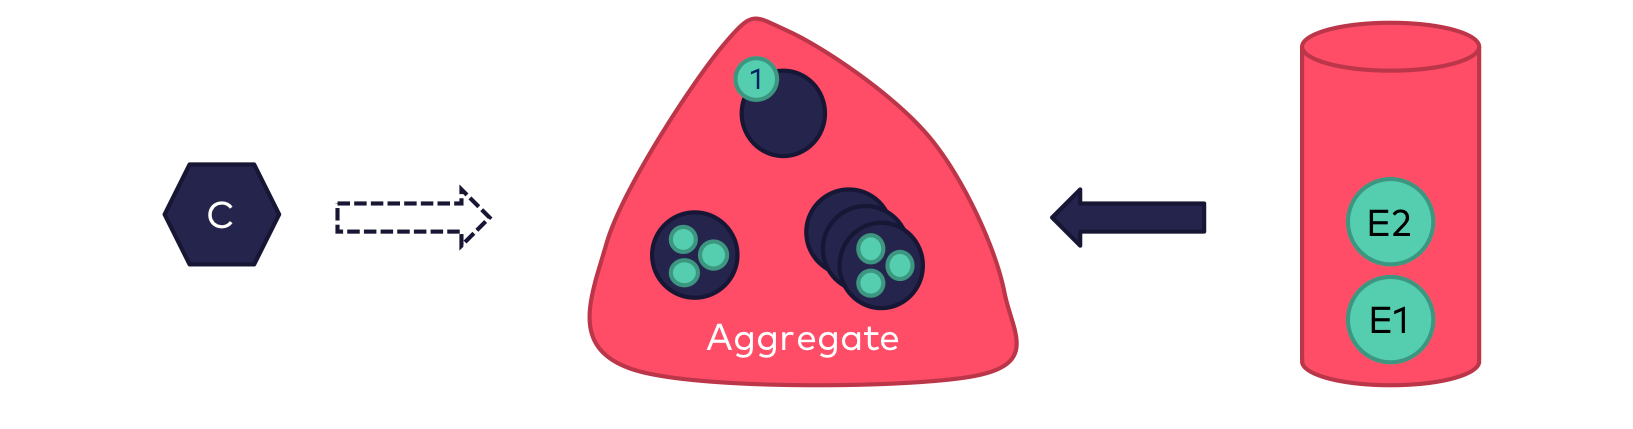 Before the invocation gets processed, an empty instance of the aggregate is created and the previously persisted events are replayed on the aggregate. The aggregate only reads the status from the respective events, and no business logic is executed. Once done, the aggregate again contains its current state in memory.